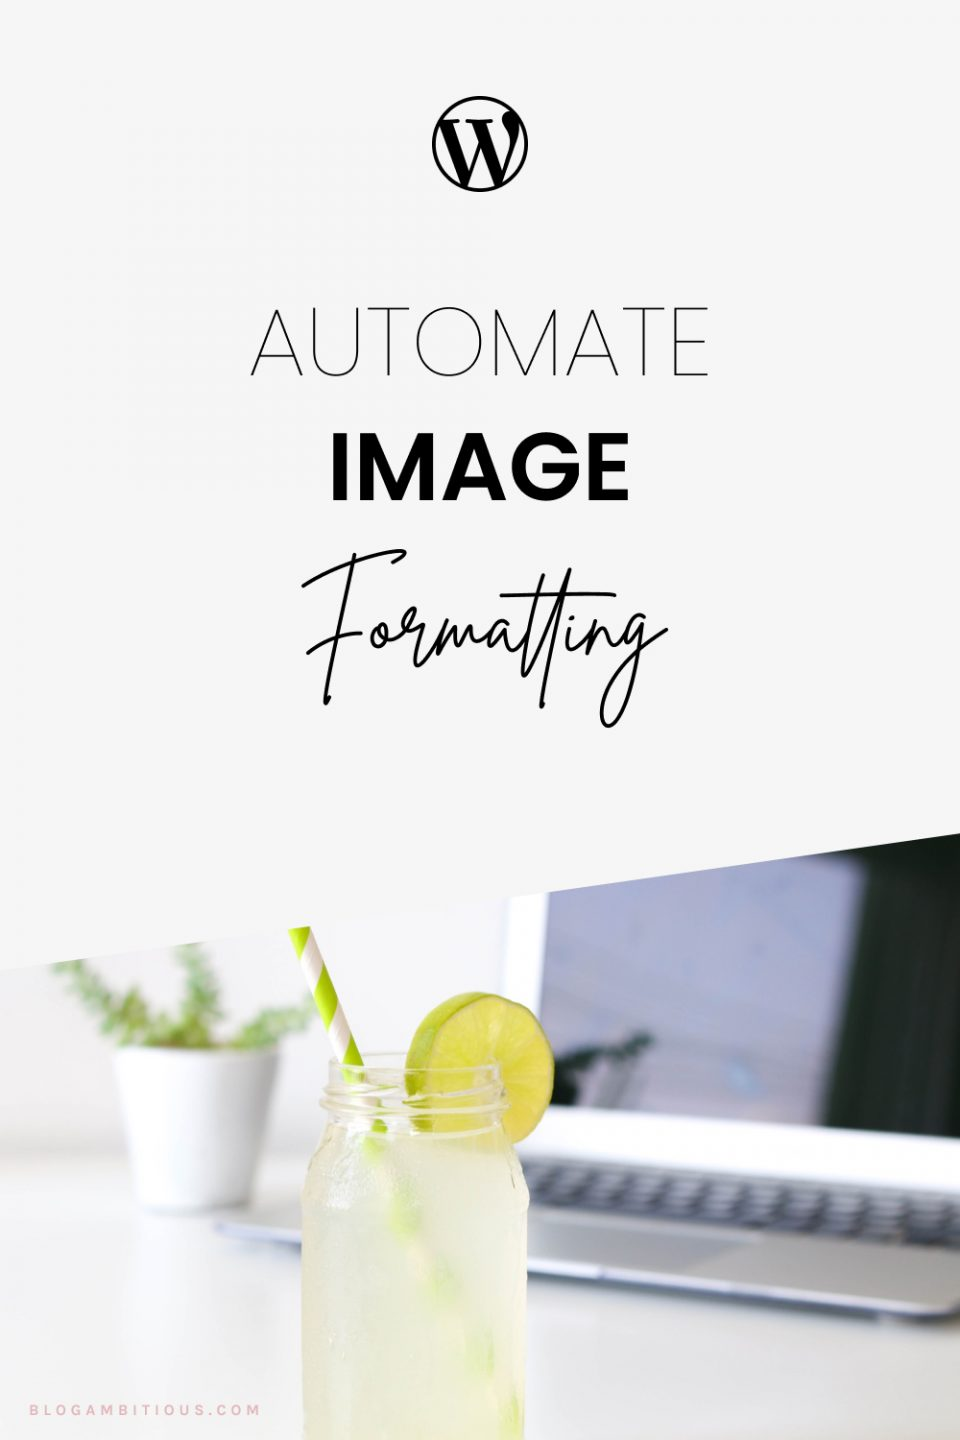 3 WordPress Hacks to Automate Image Formatting on Your Blog